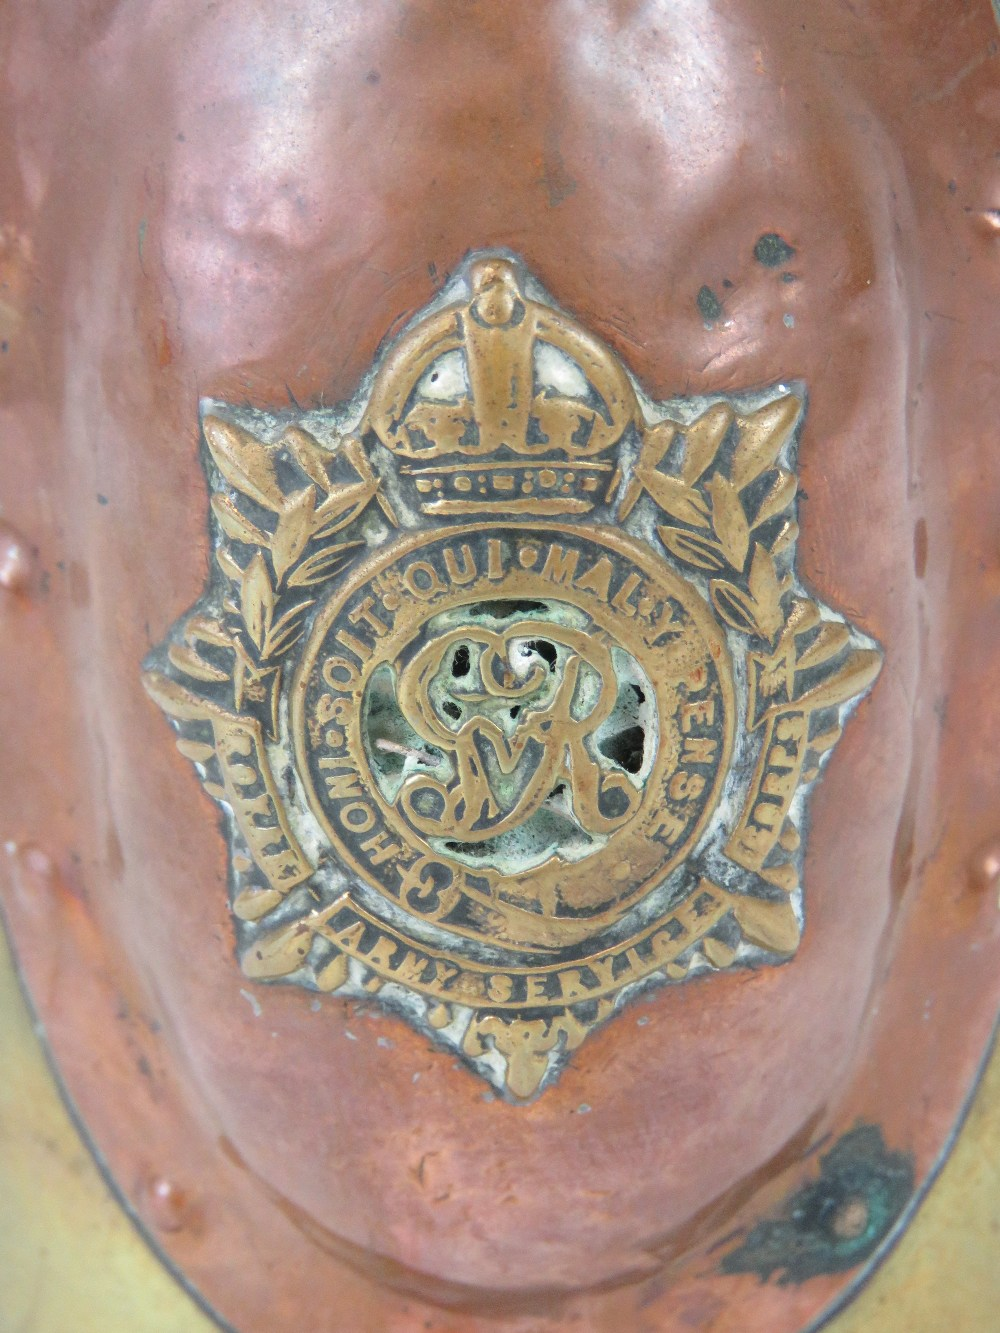 A trench Art shell case lidded pot having Royal Army Services Corps and Canadian Military badges - Image 2 of 5